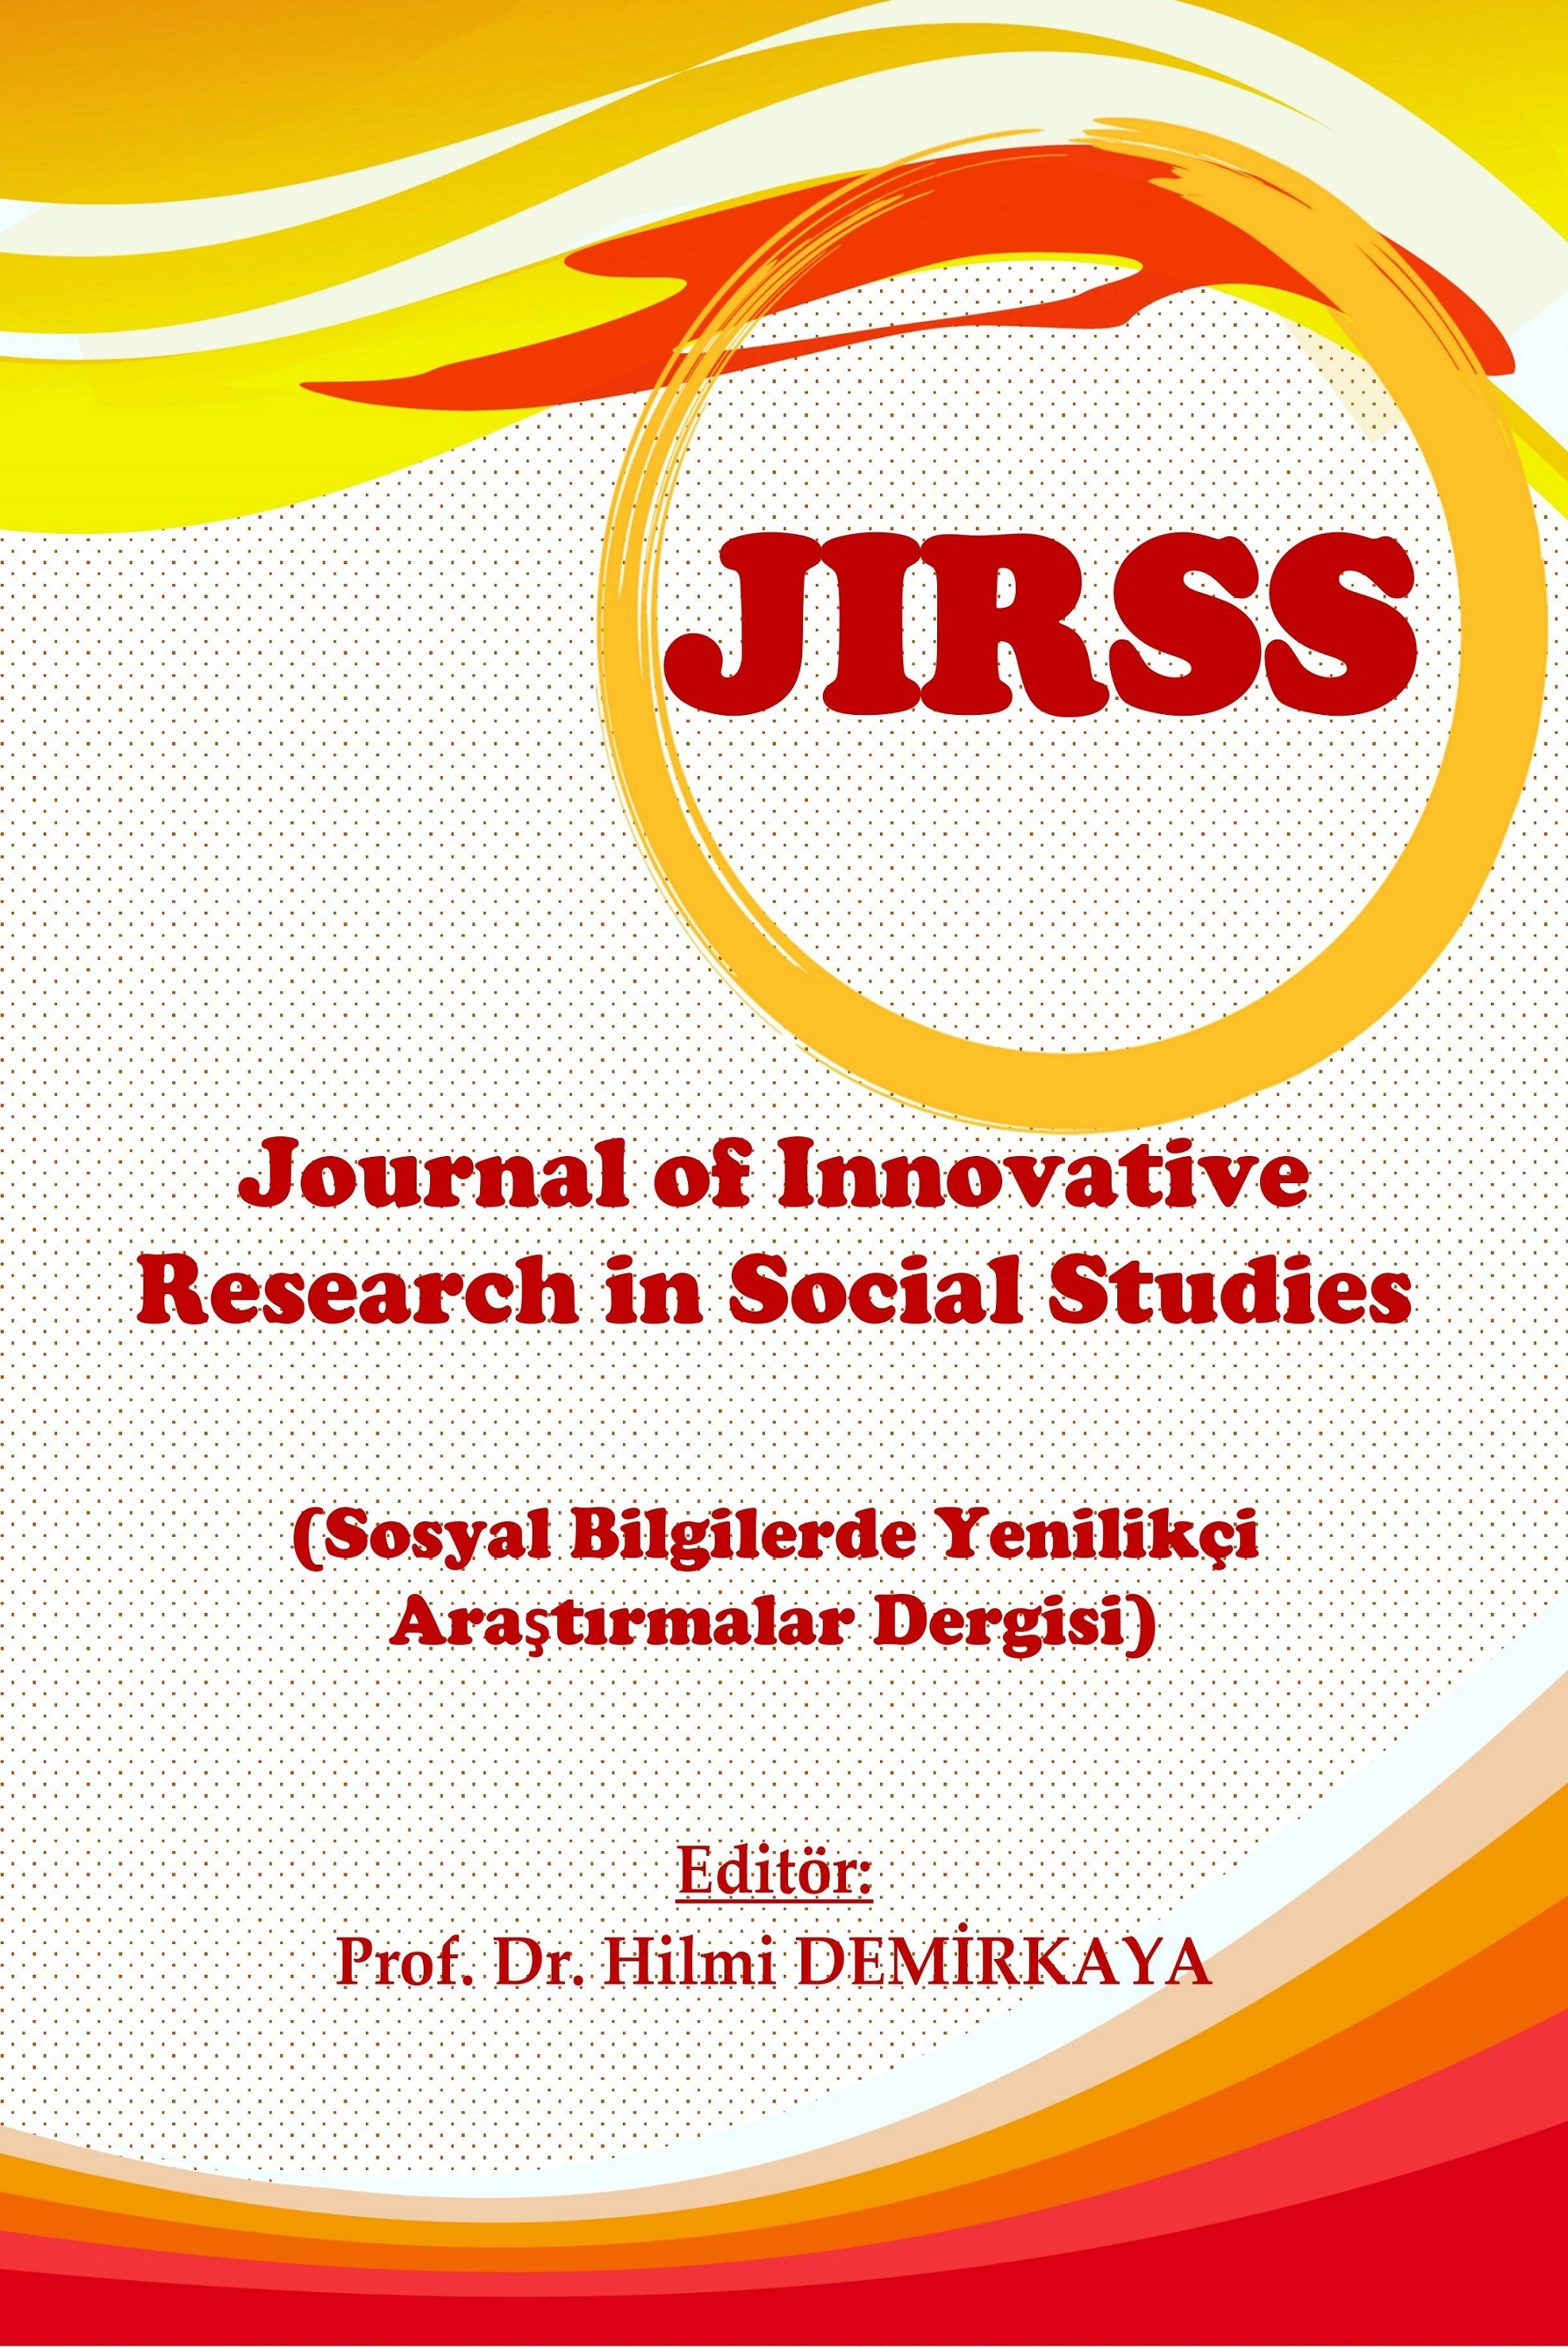 Journal of Innovative Research in Social Studies